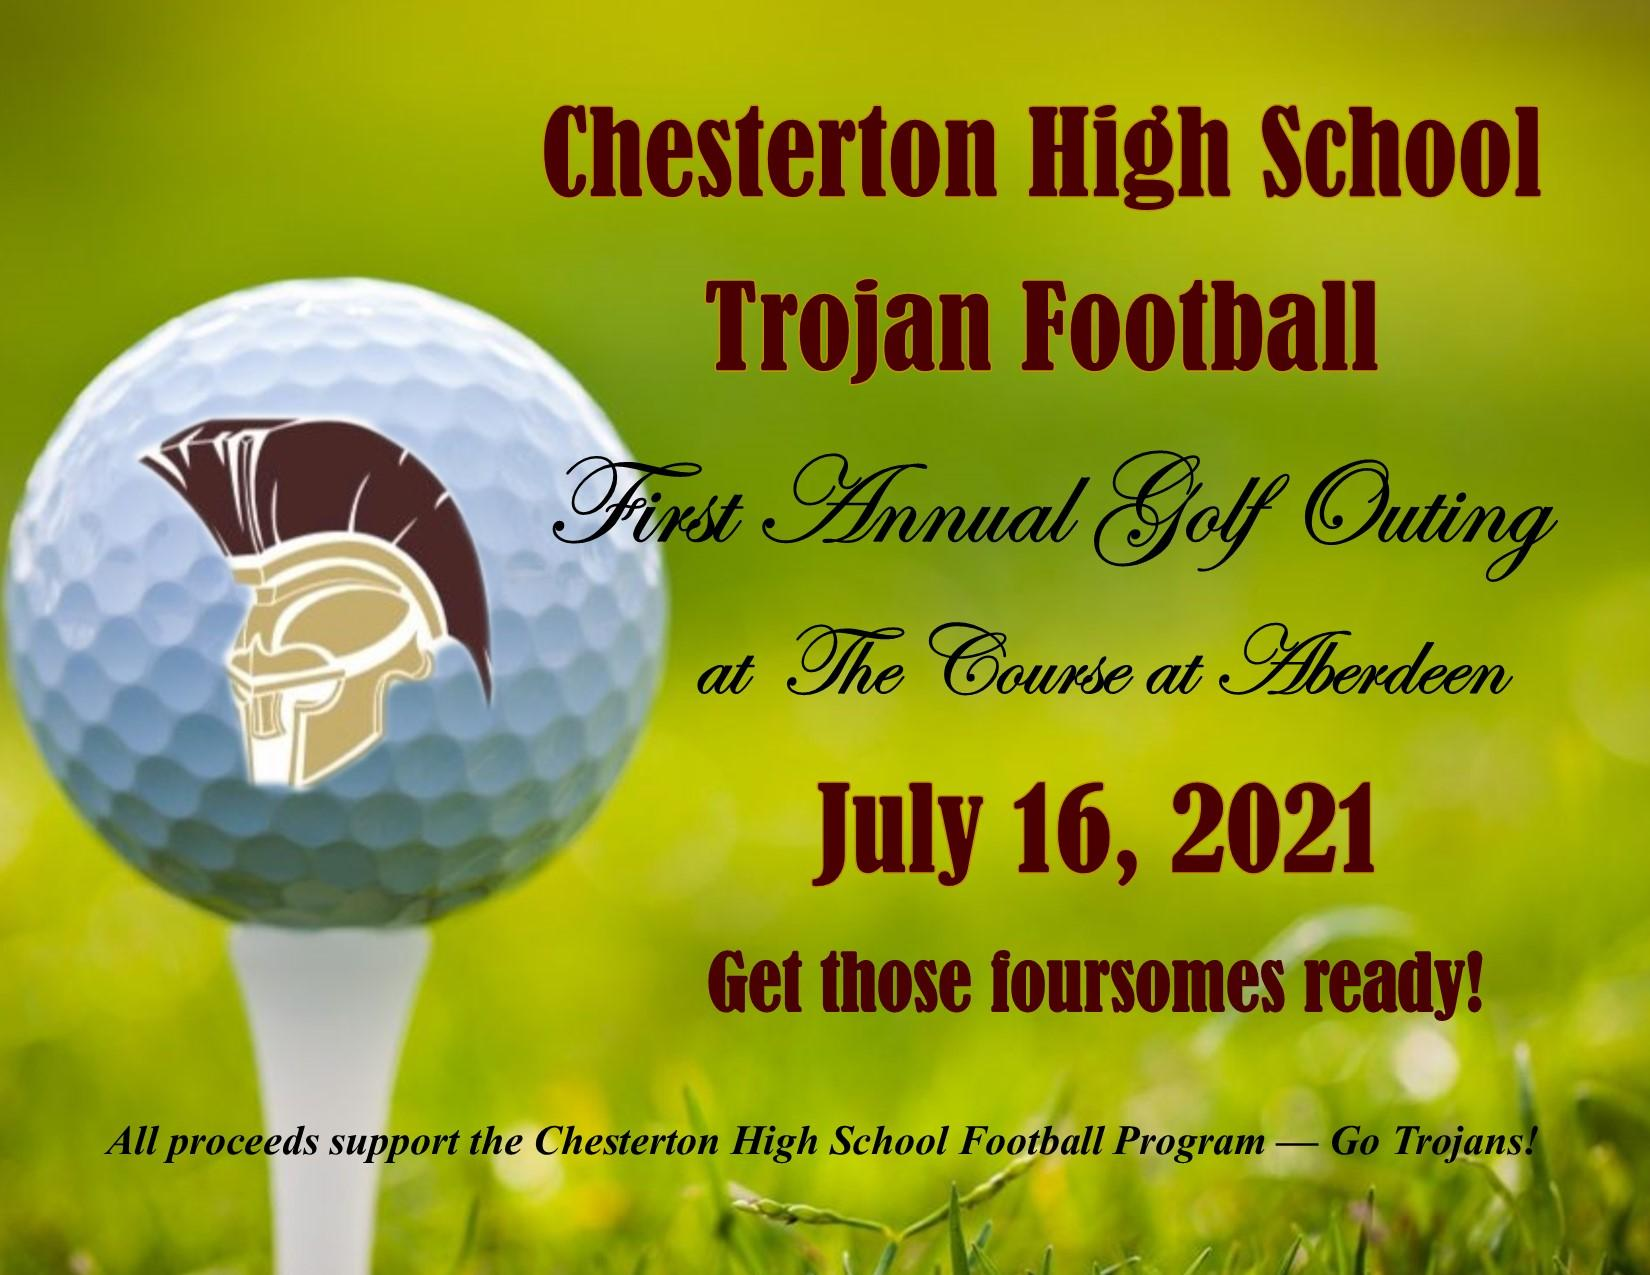 1st Annual CHS Football Golf Outing - July 16, 2021@the Course at Aberdeen